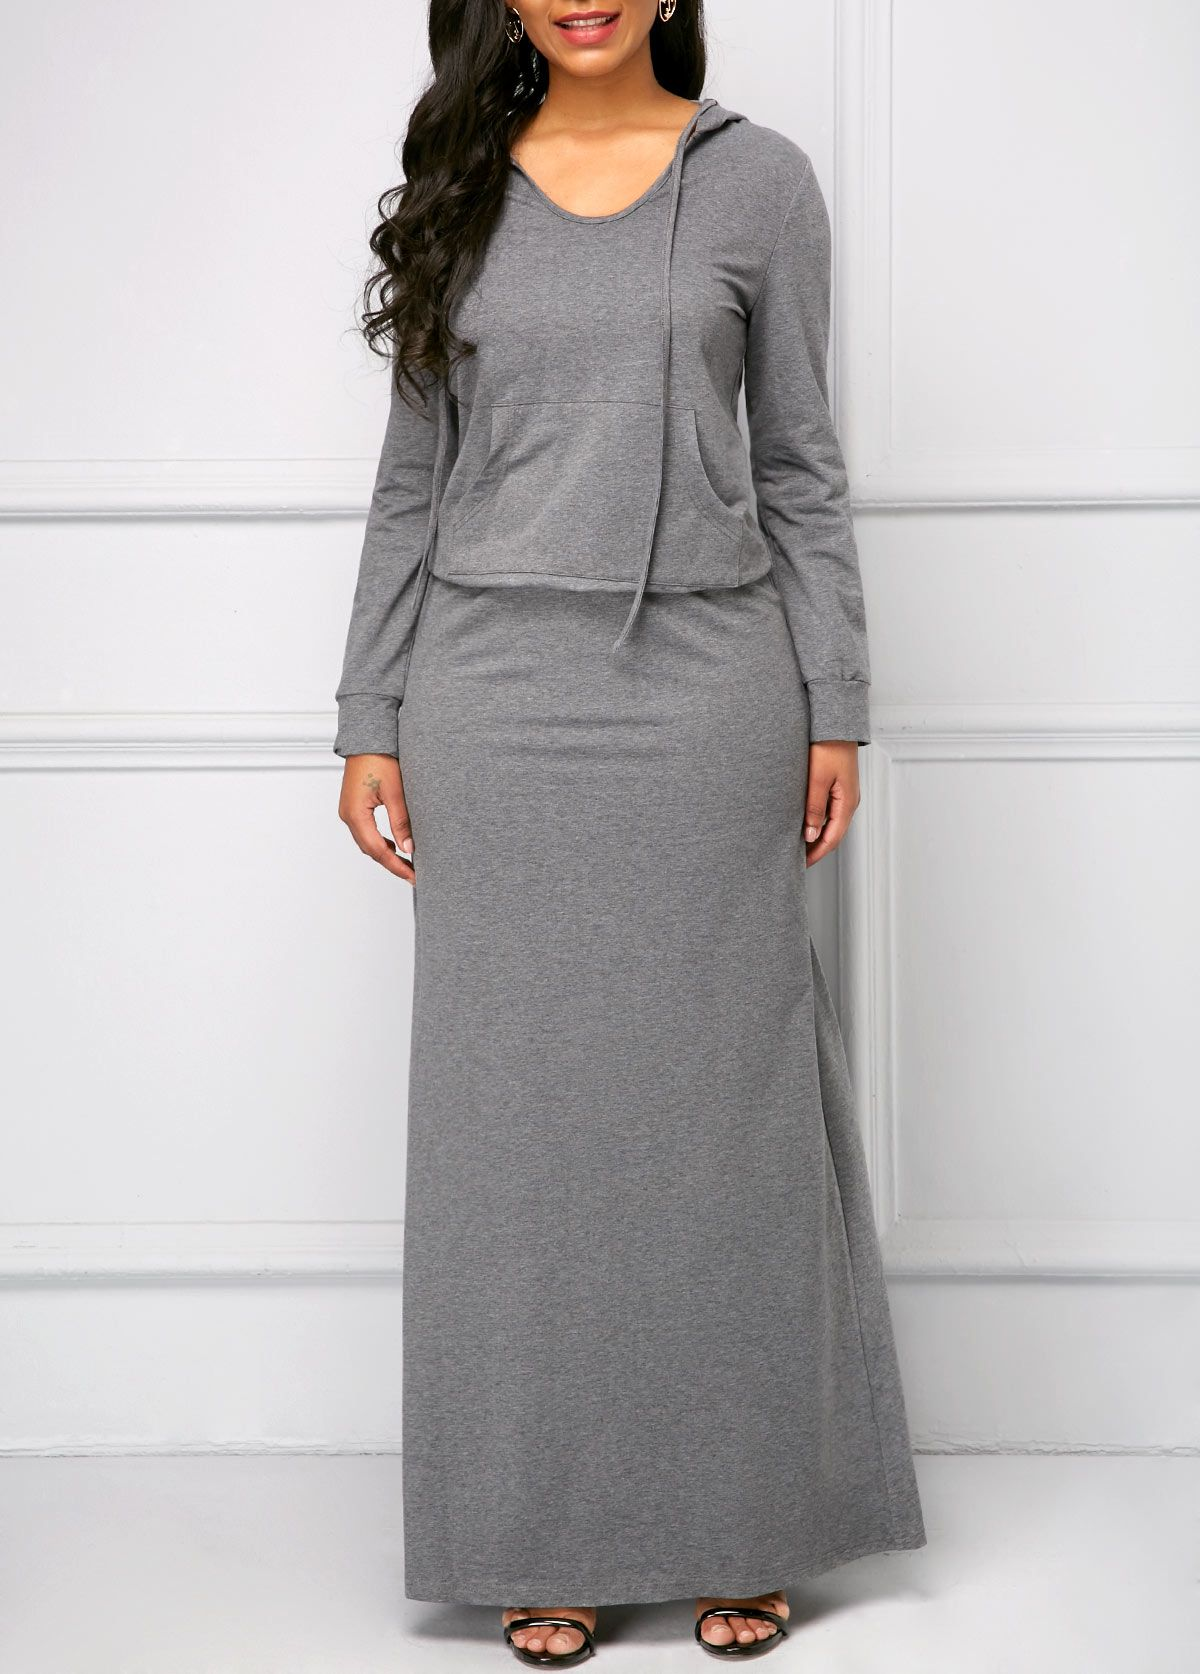 grey v neck long sleeve maxi dress | modlily - usd